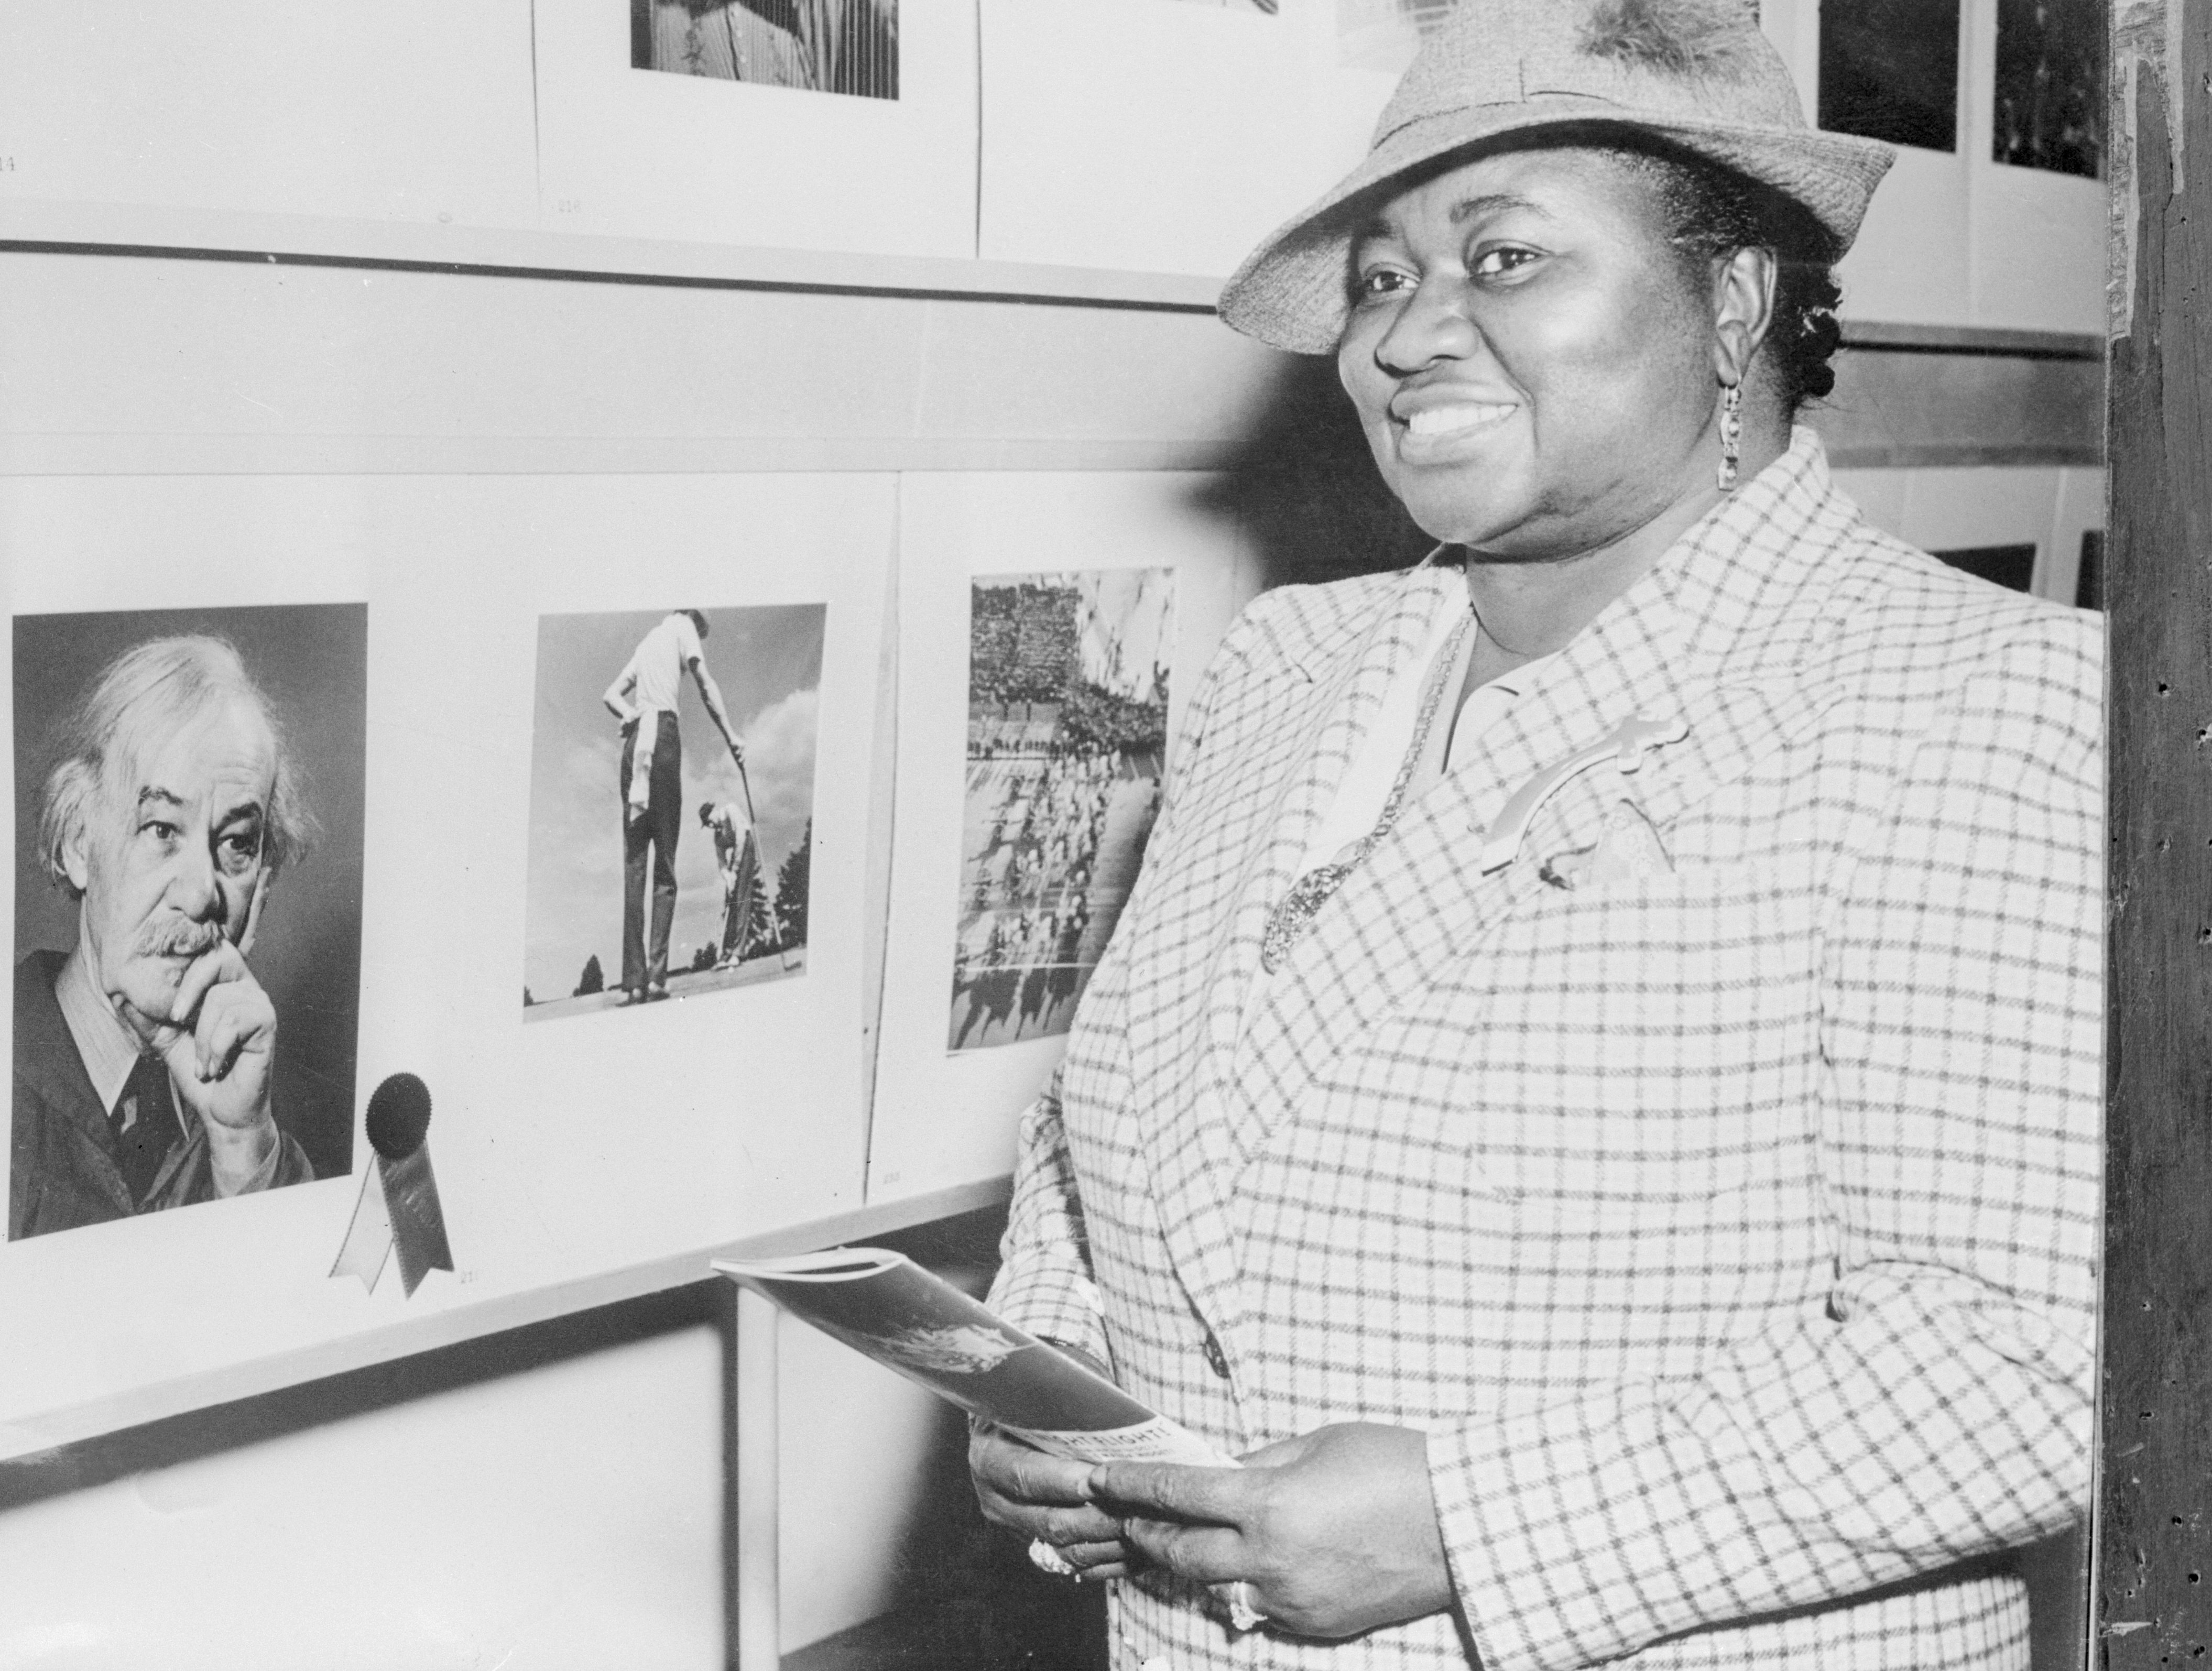 Hattie McDaniel Viewing a Photo Exhibit, April 02, 1941 | Photo: GettyImages